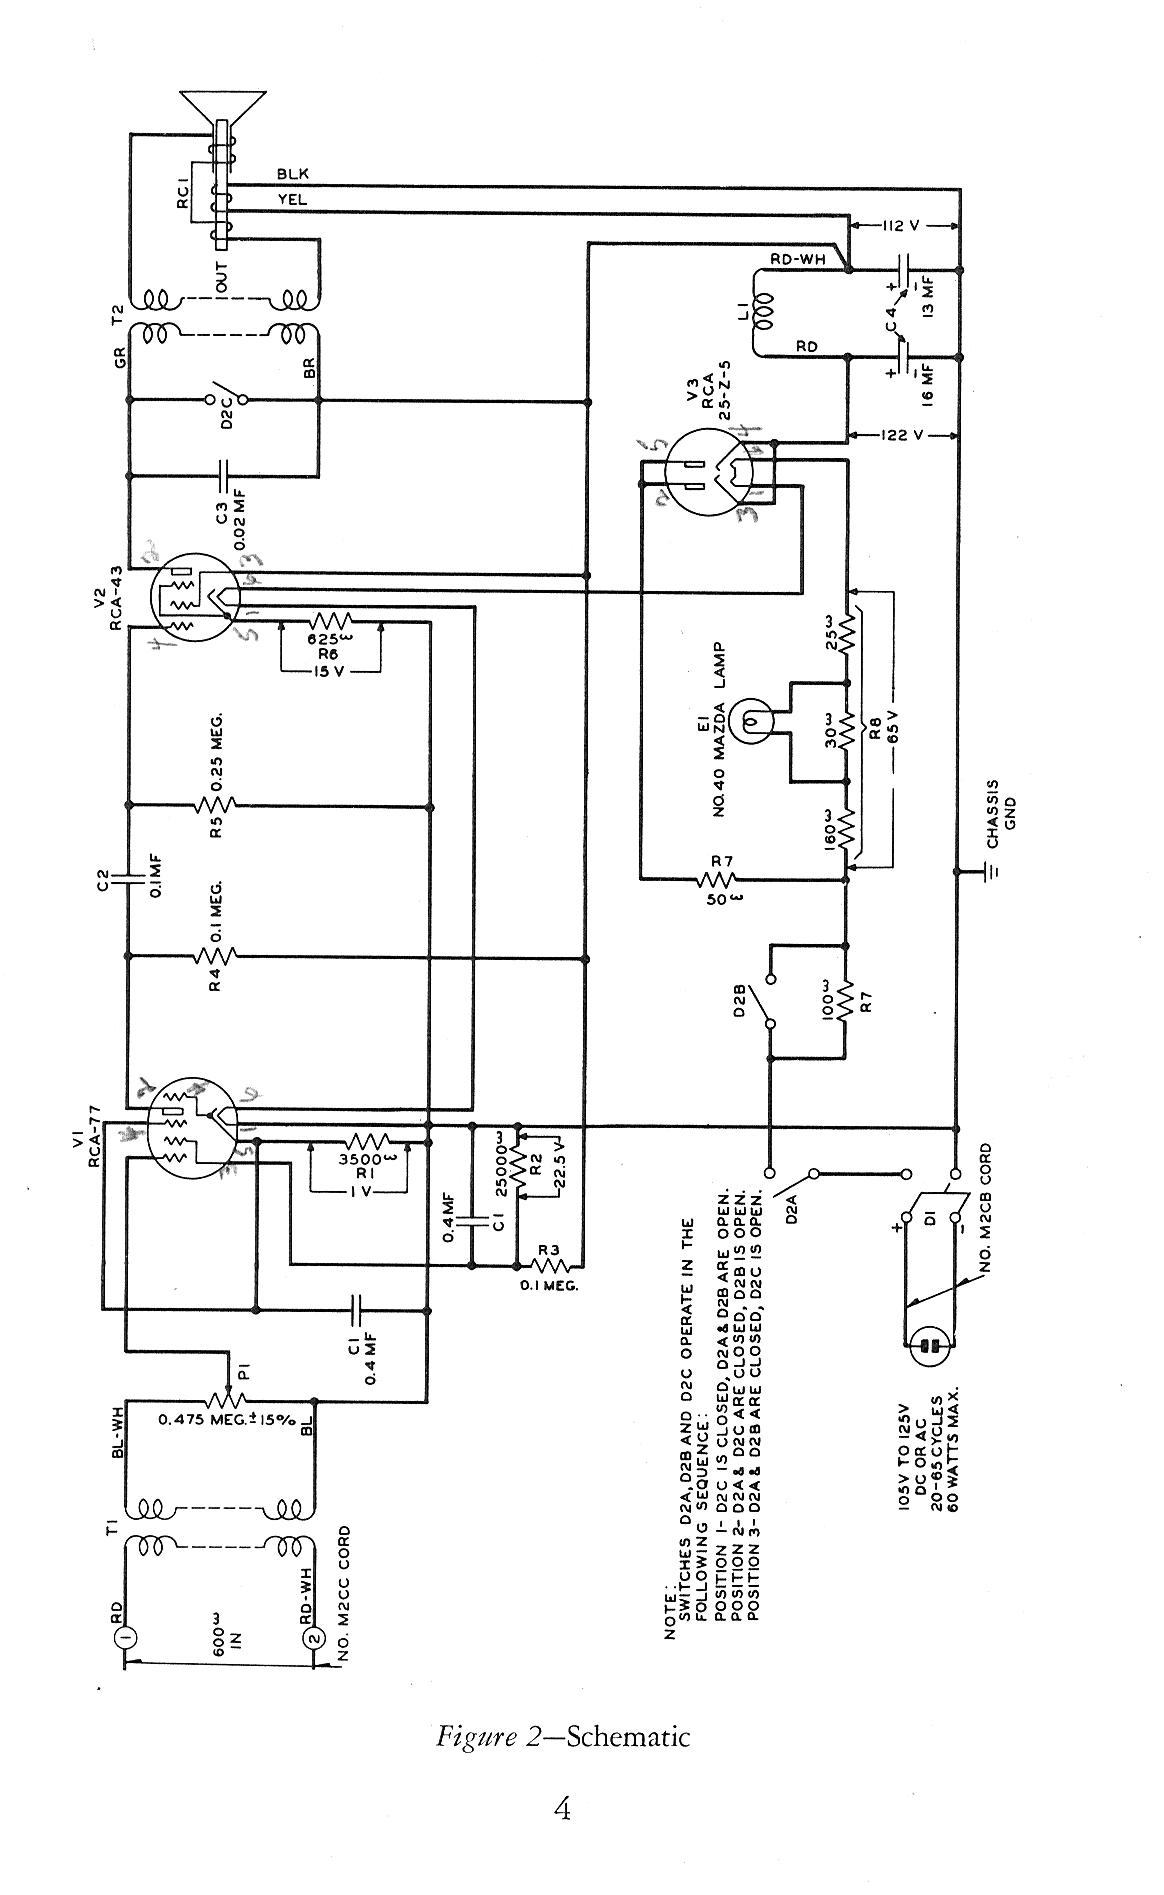 intercom wiring diagram of unit 10